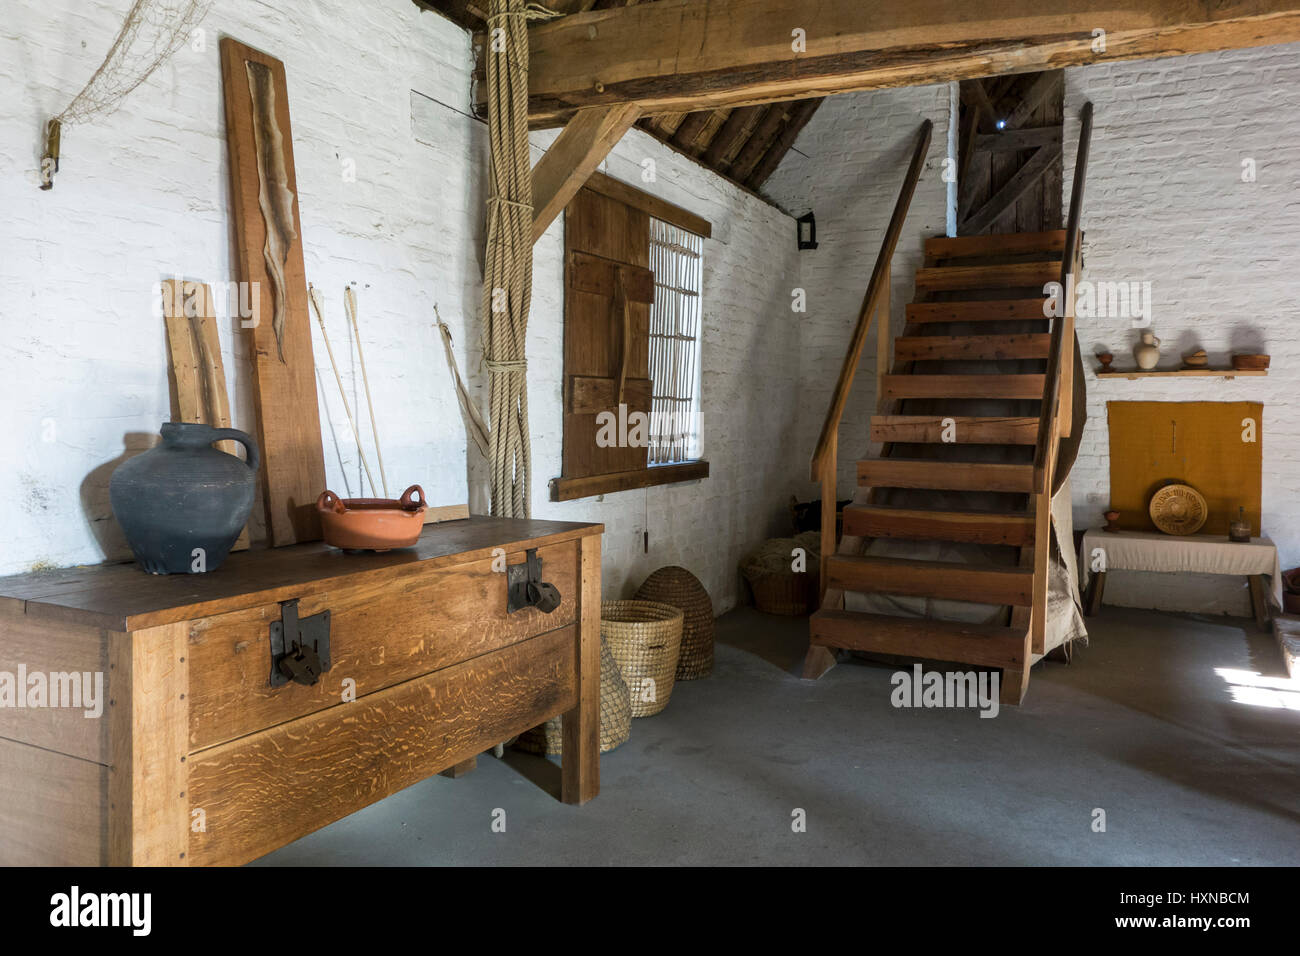 Interior of 15th century fisherman's house at the reconstructed medieval fishing village of Walraversijde, open - Stock Image